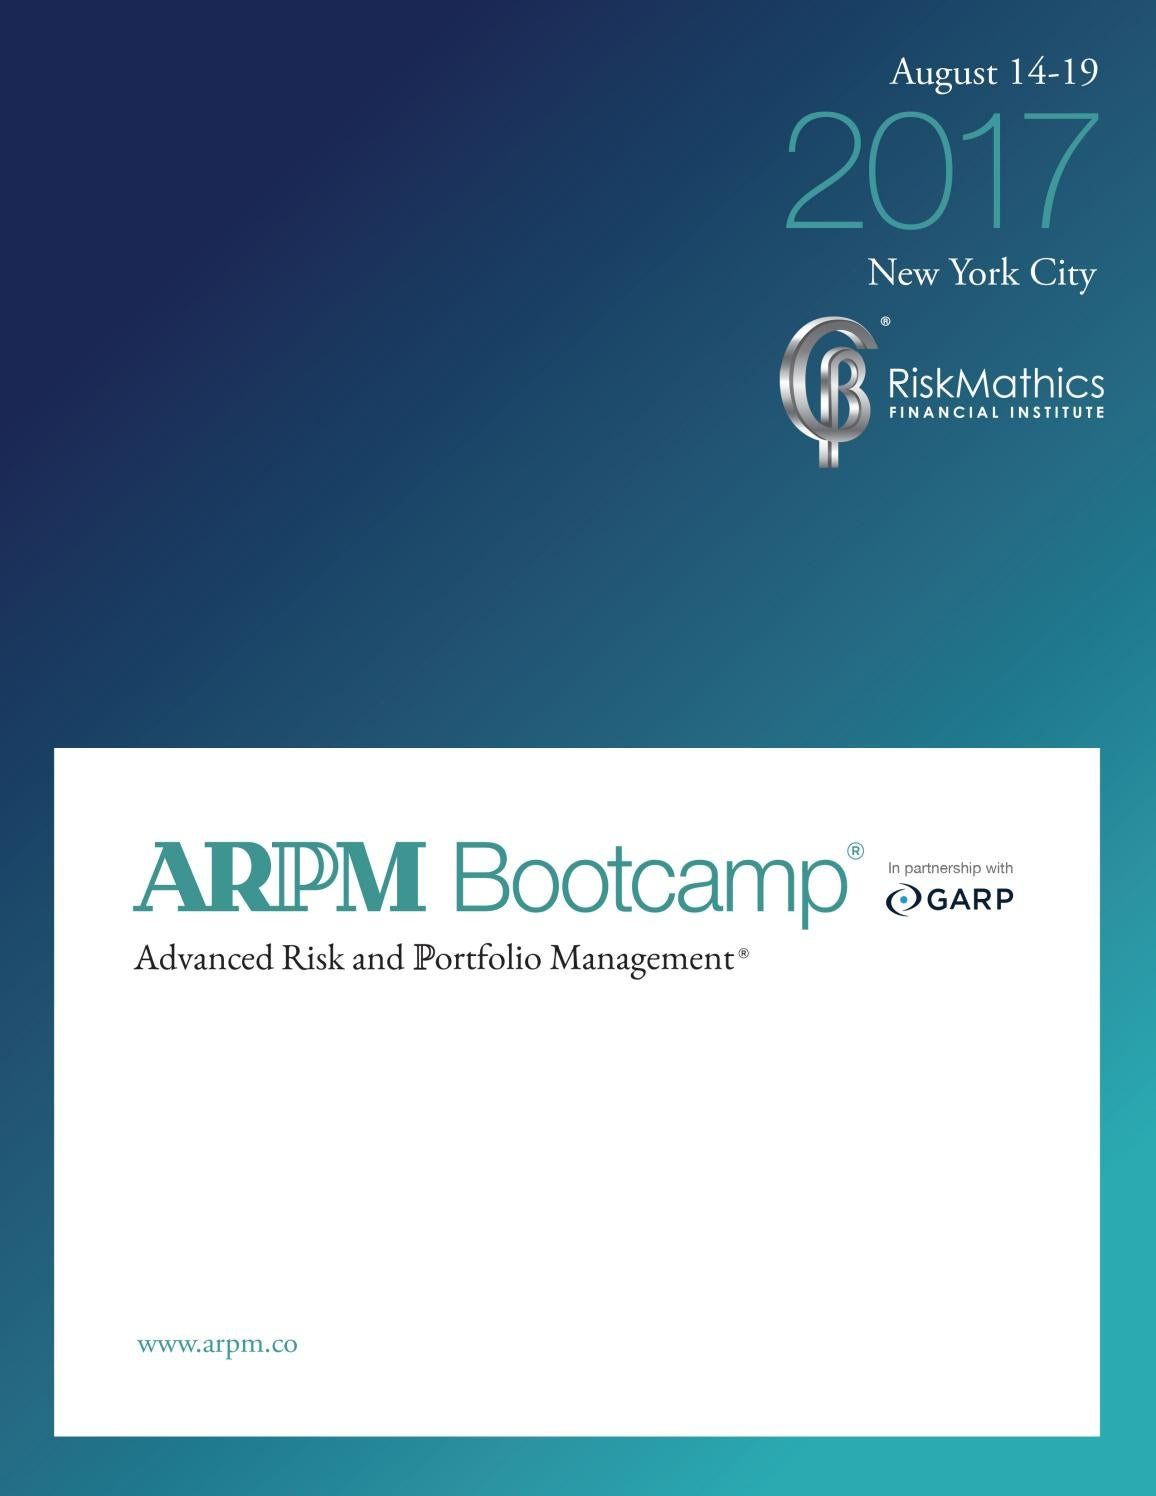 ARPM Boot Camp 2017 -NY- by RiskMathics Financial Intitute